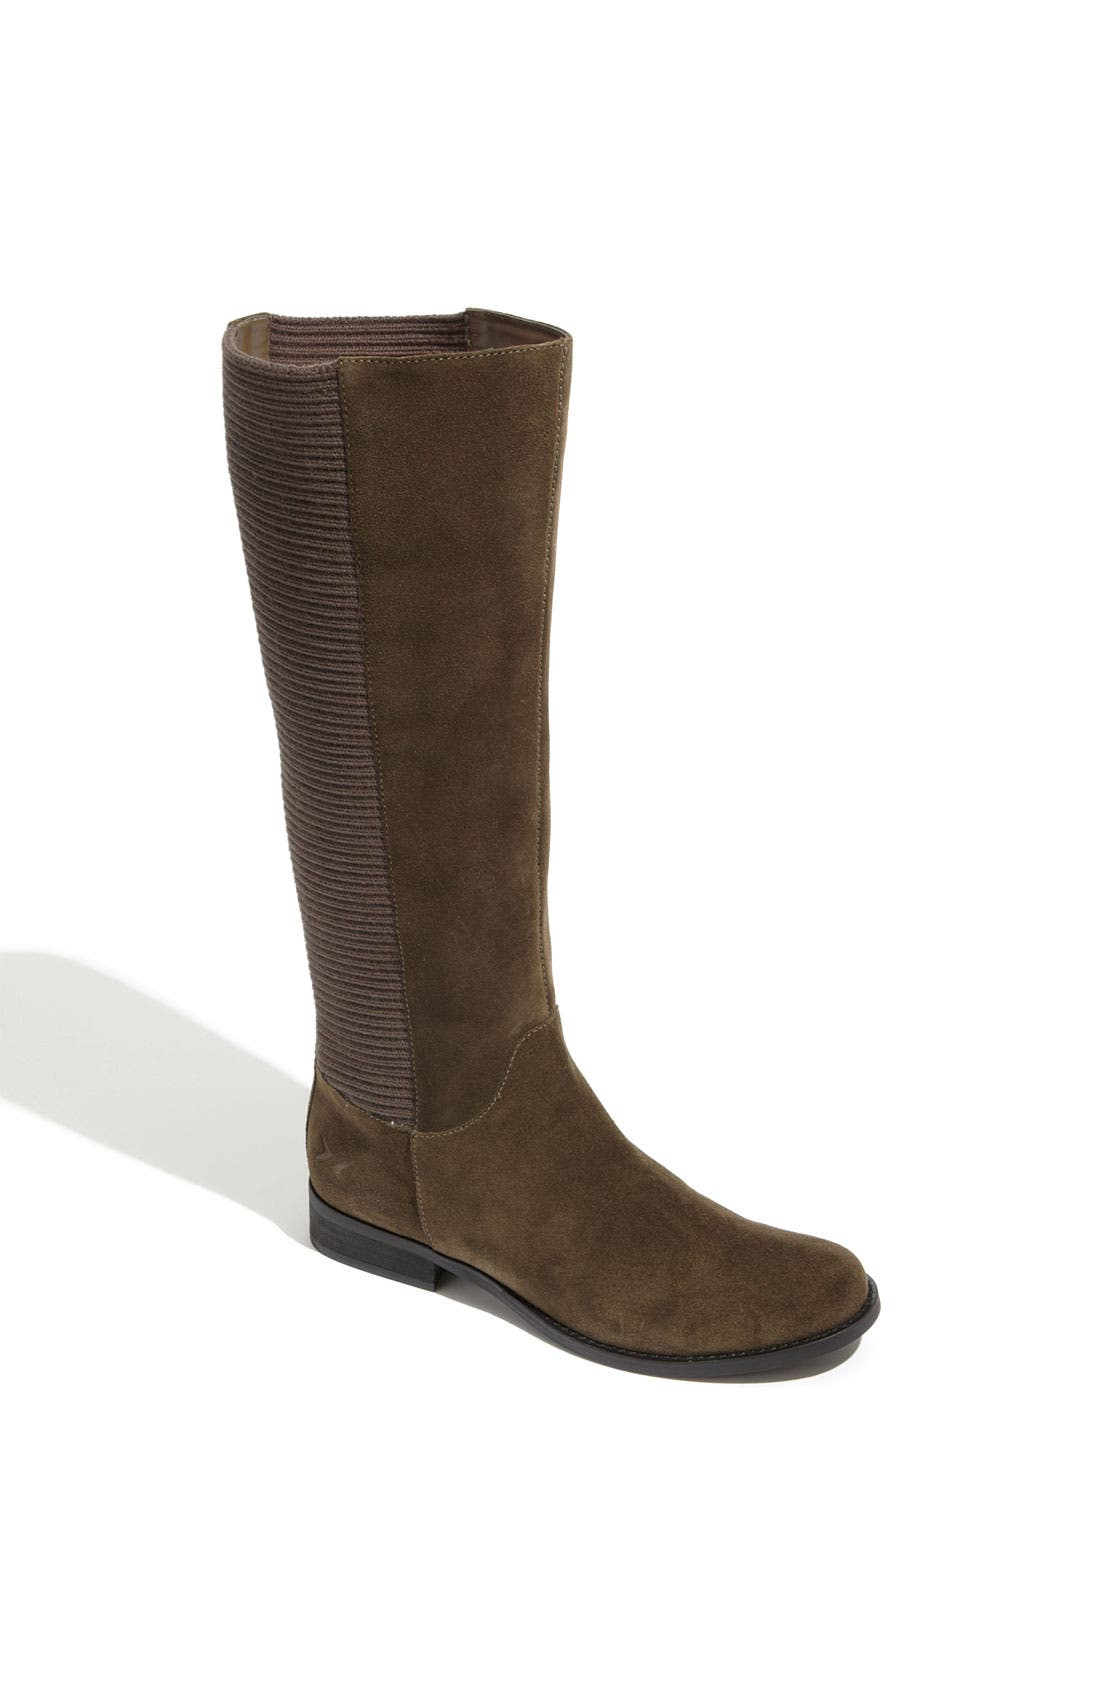 Alternate Image 1 Selected - Aetrex 'Heather Essence' Boot